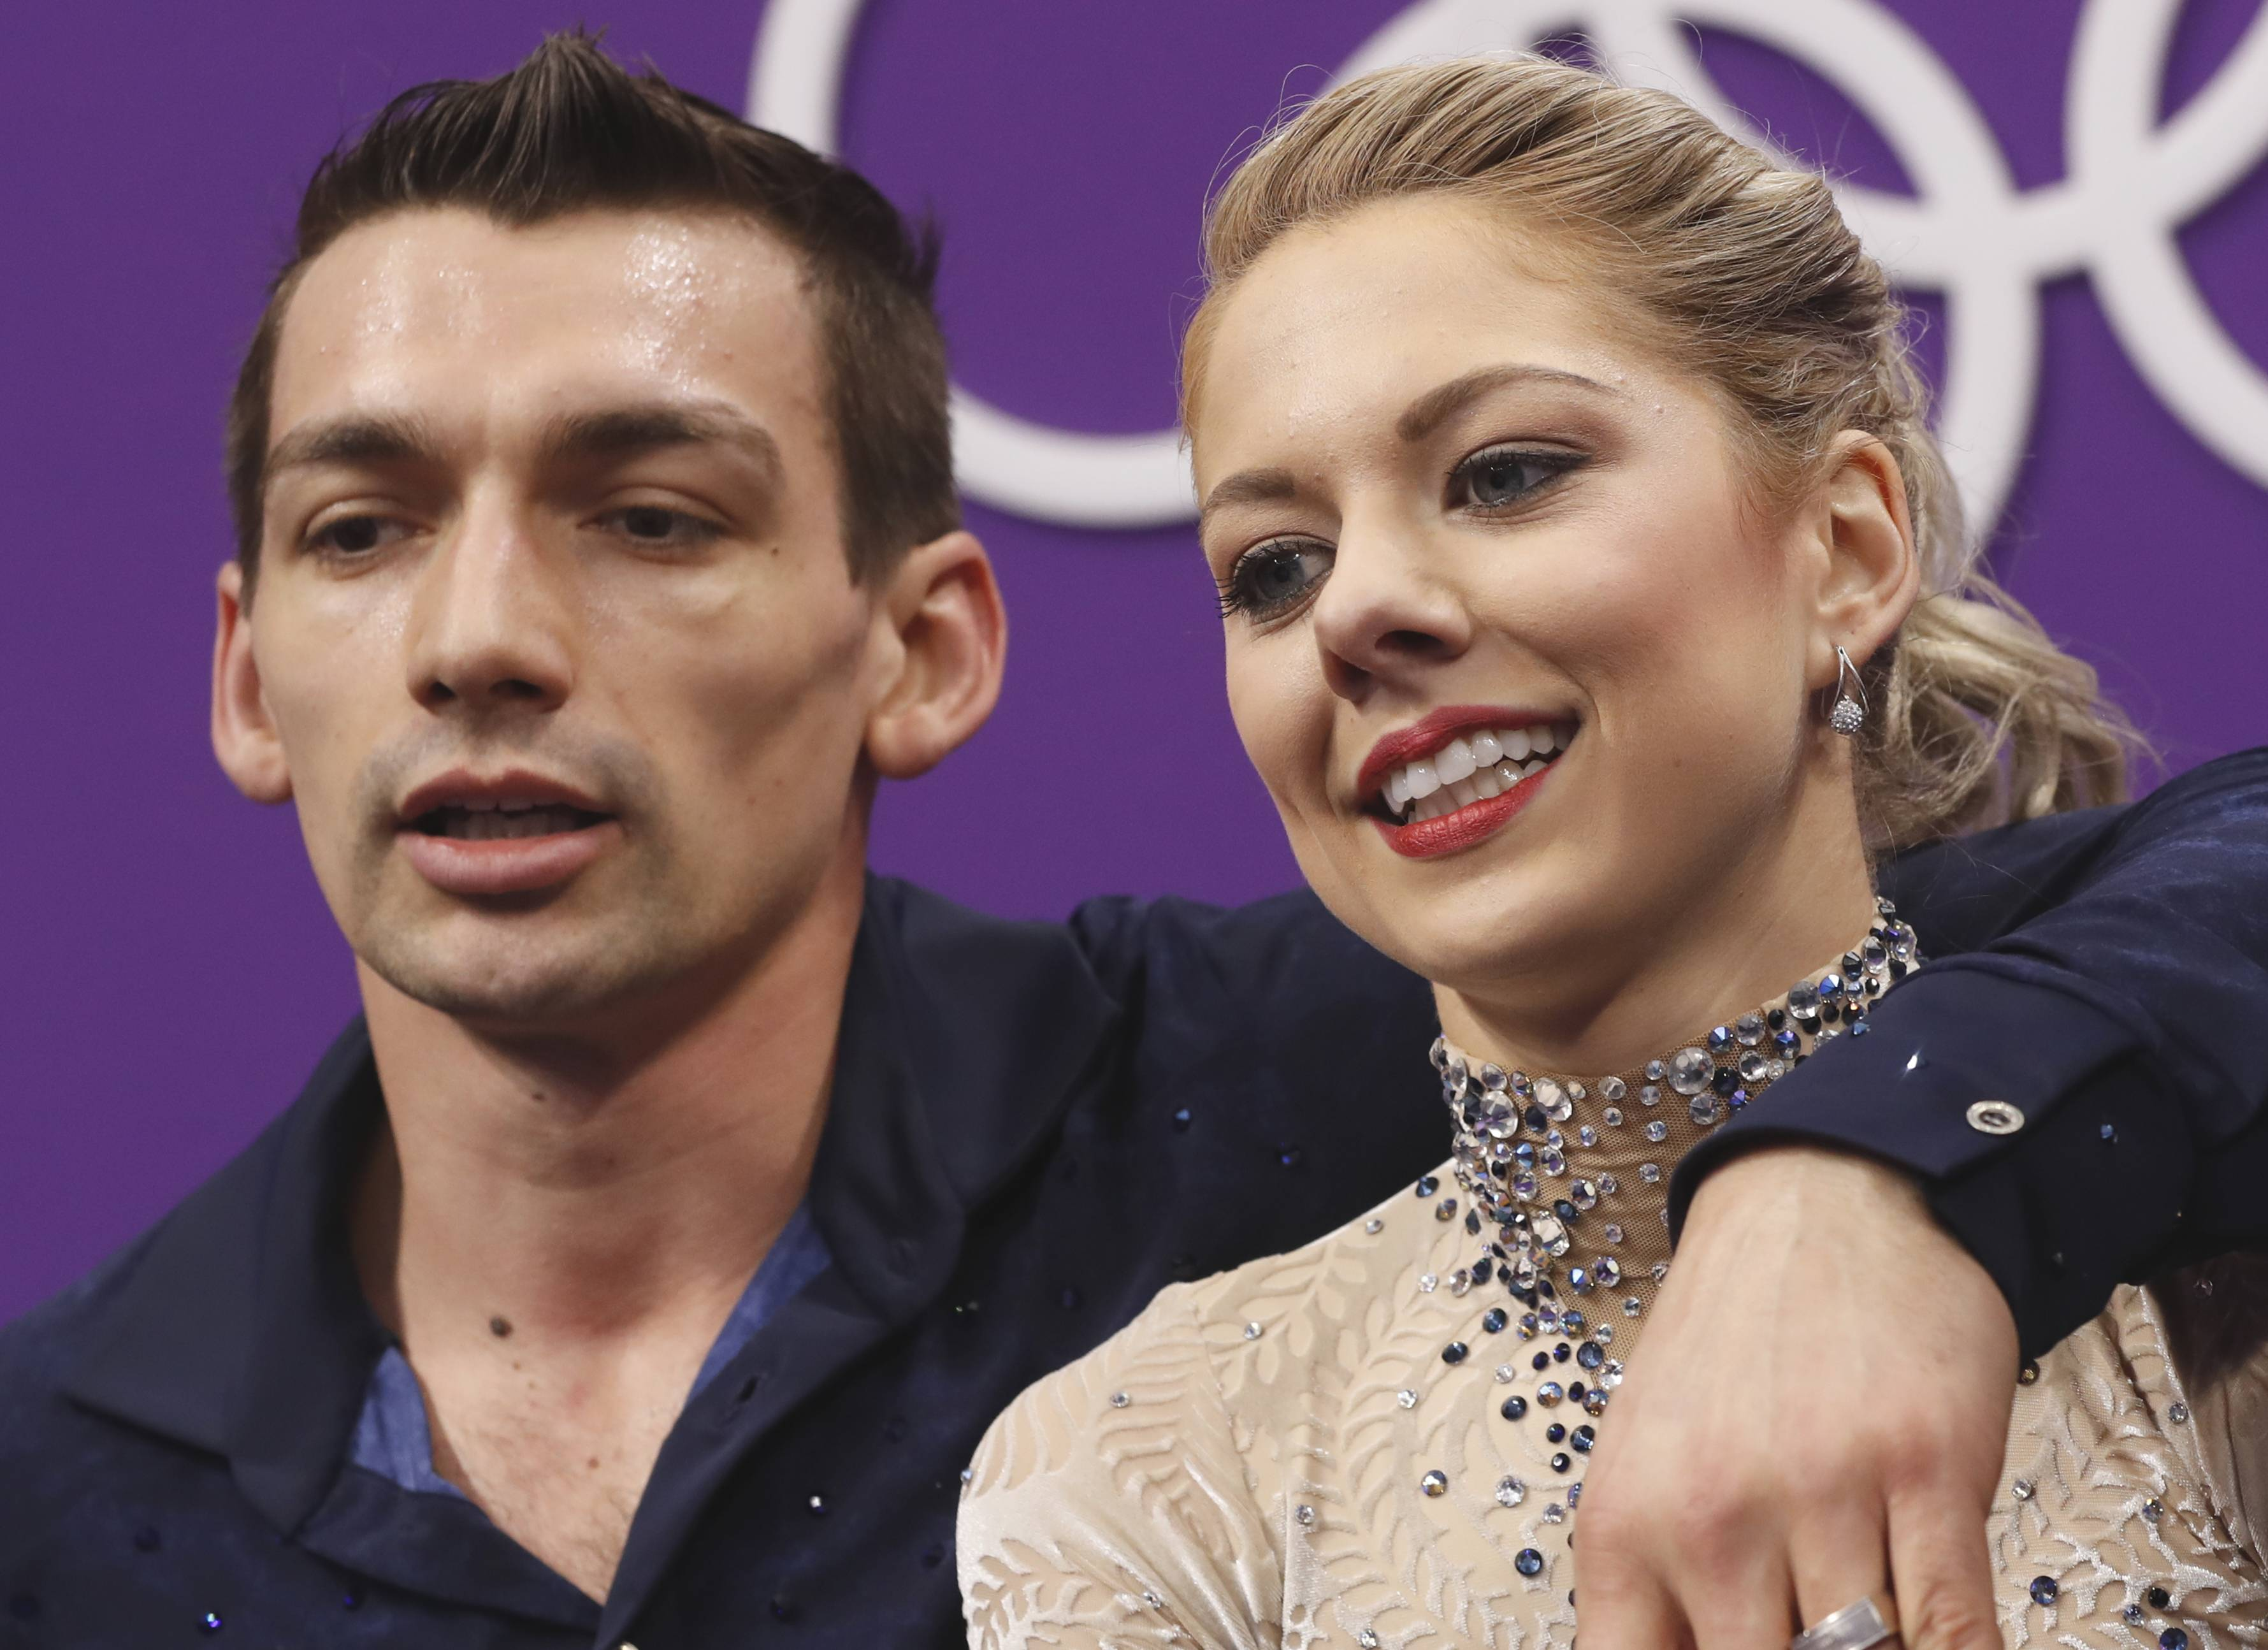 Alexa Scimeca Knierim and Chris Knierim of the USA react as they wait for their scores to be posted following their performance in the pair figure skating short program in the Gangneung Ice Arena at the 2018 Winter Olympics in Gangneung, South Korea, Wednesday, Feb. 14, 2018.